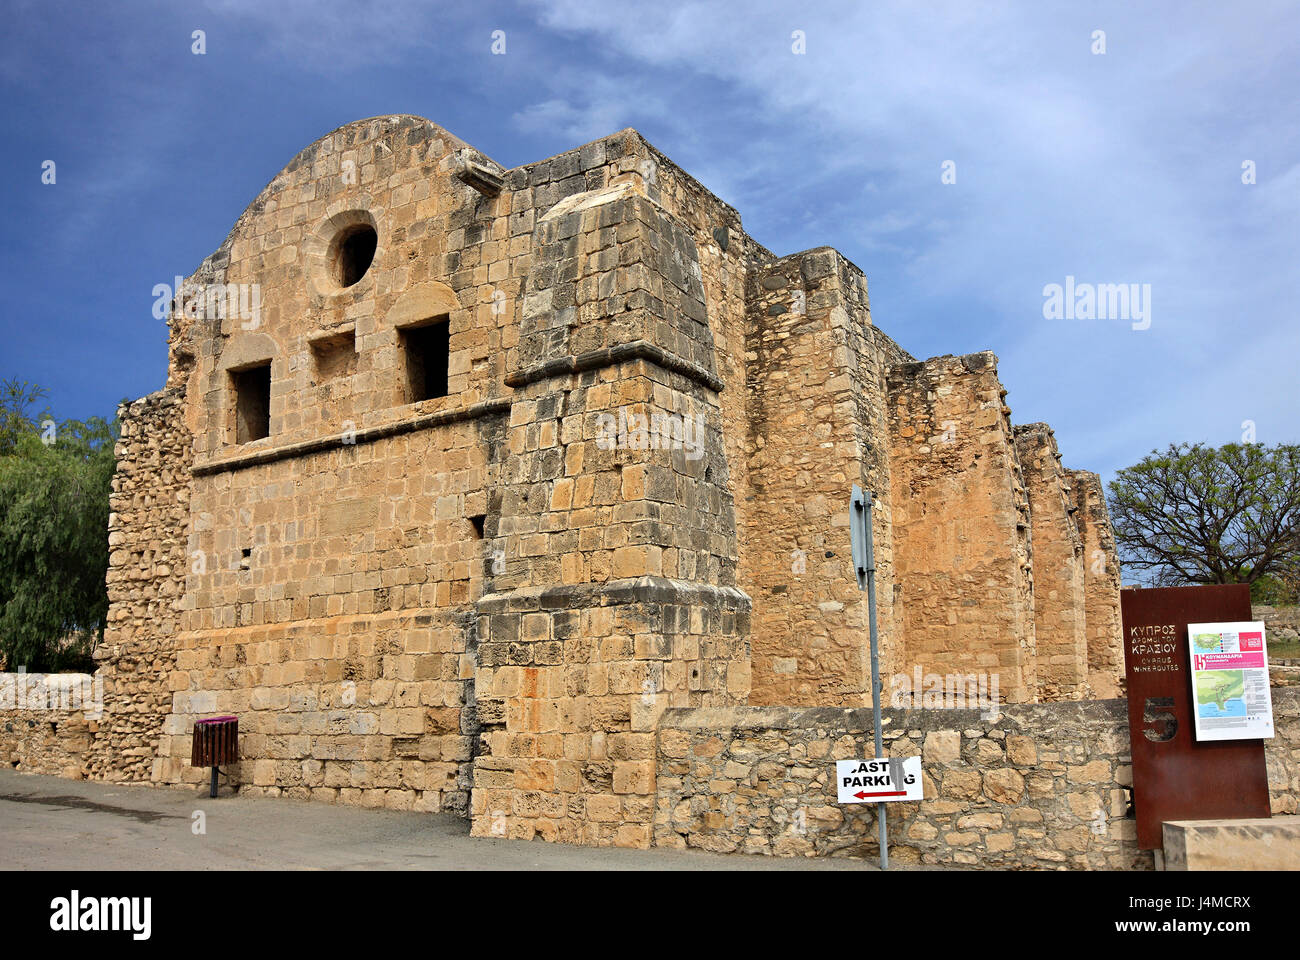 The sugar factory of Kolossi Castle, a former Crusader stronghold on the south-west edge of Kolossi village, Limassol - Stock Image